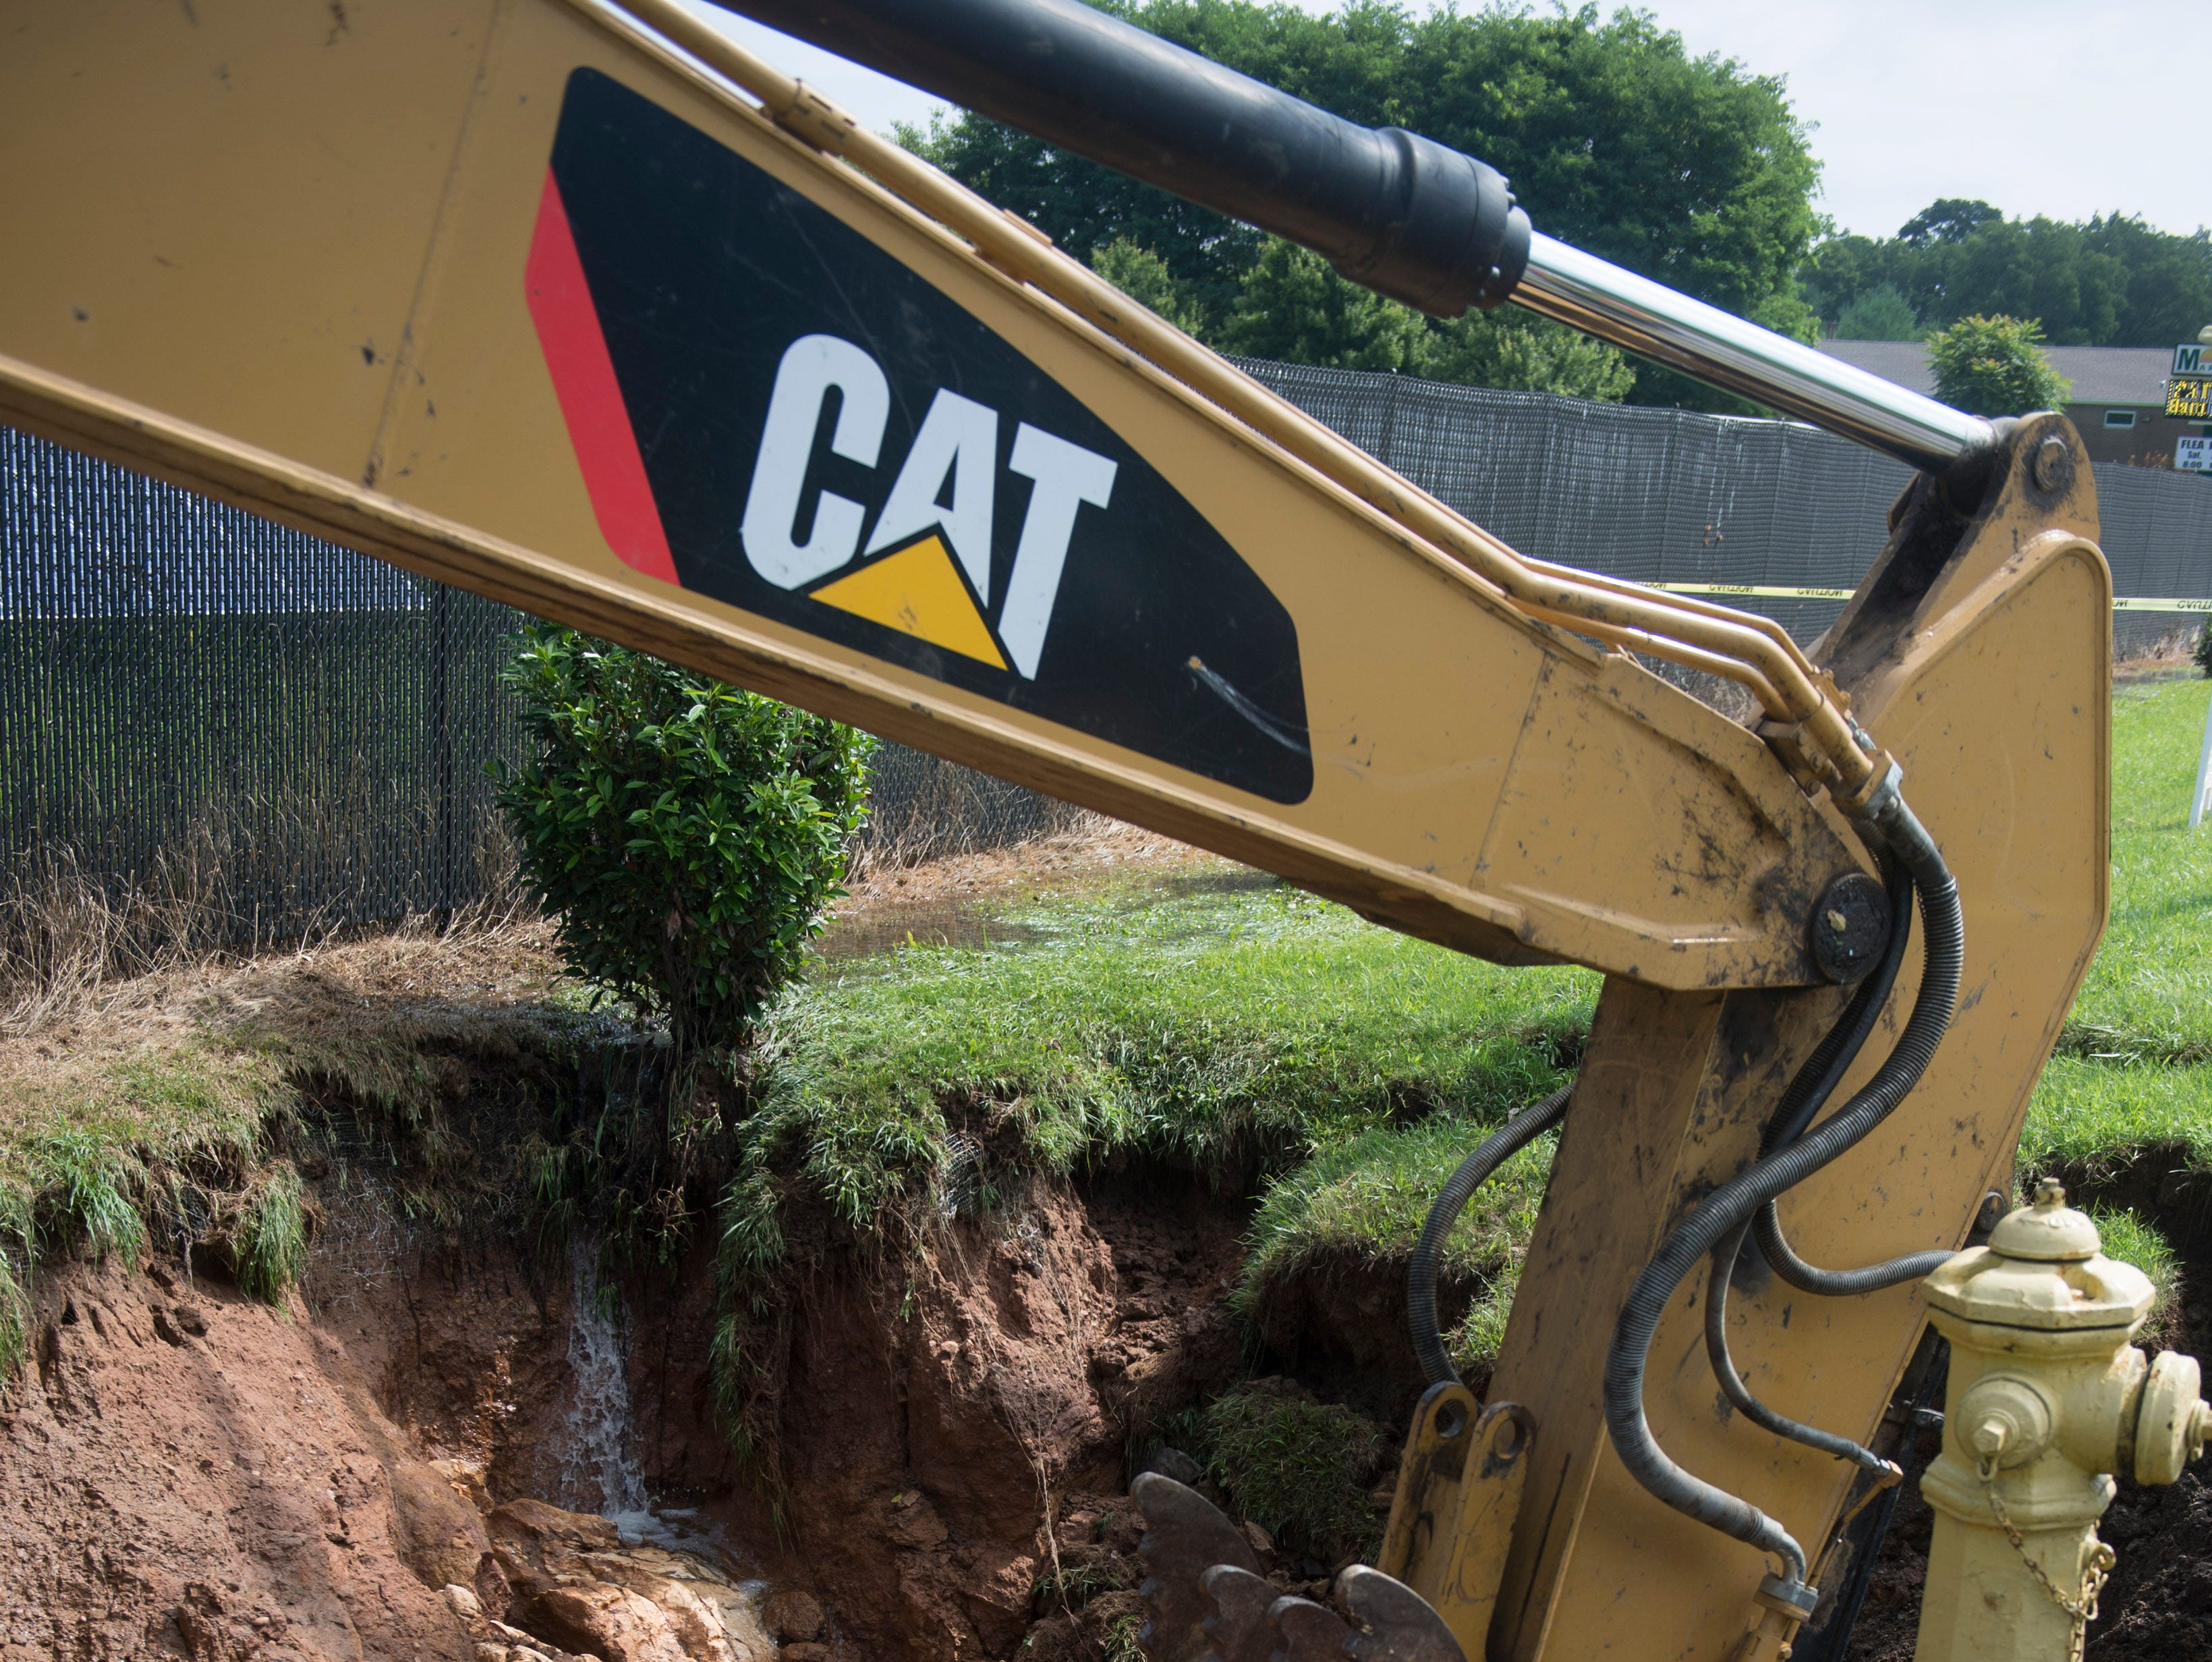 An excavator moves dirt out from a sink hole near Route 30 in Thomasville on July 26, 2018.